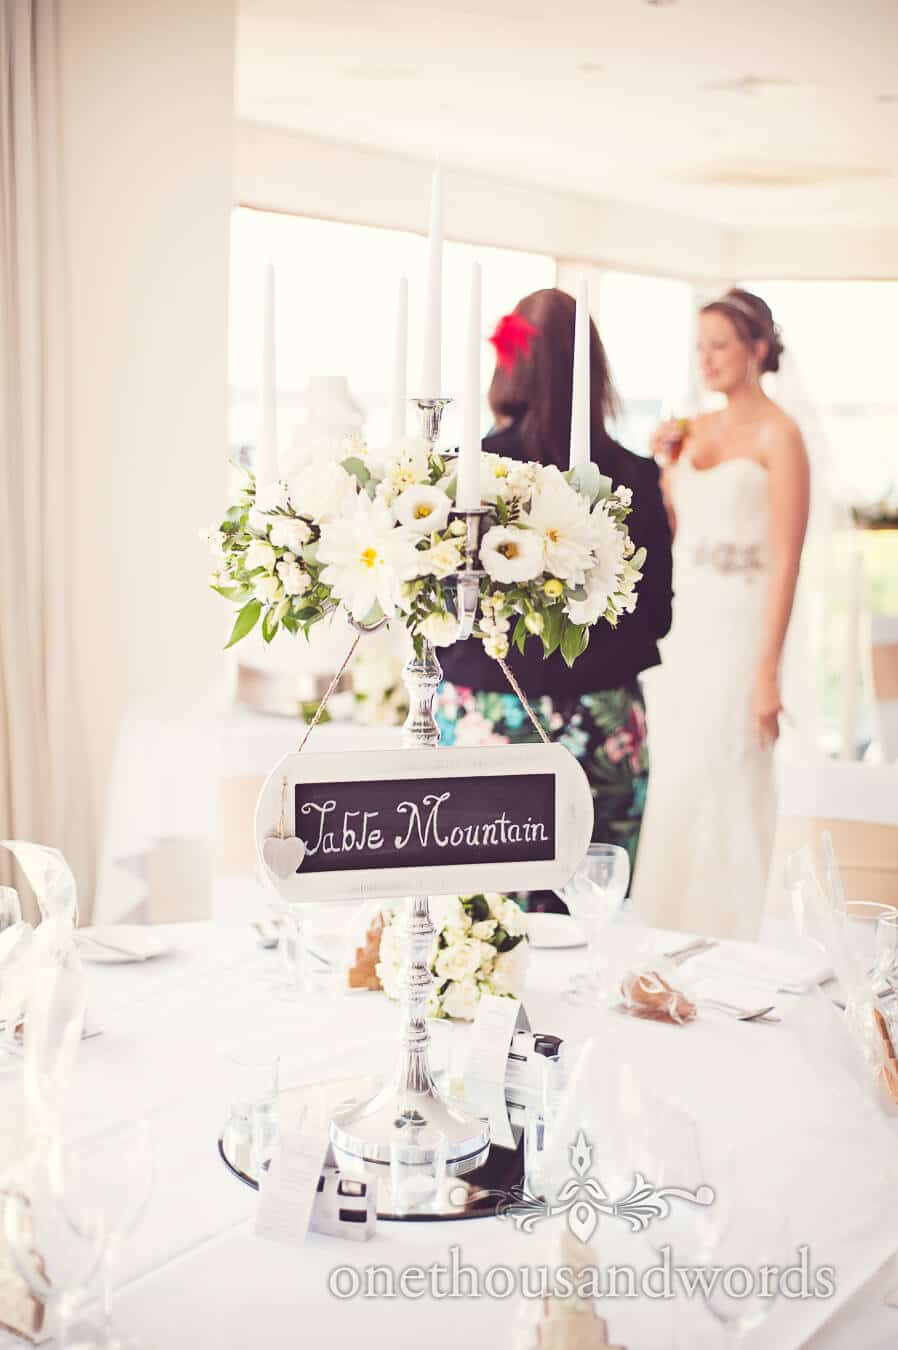 Wedding candelabra with wedding flowers and sign at Poole wedding venue